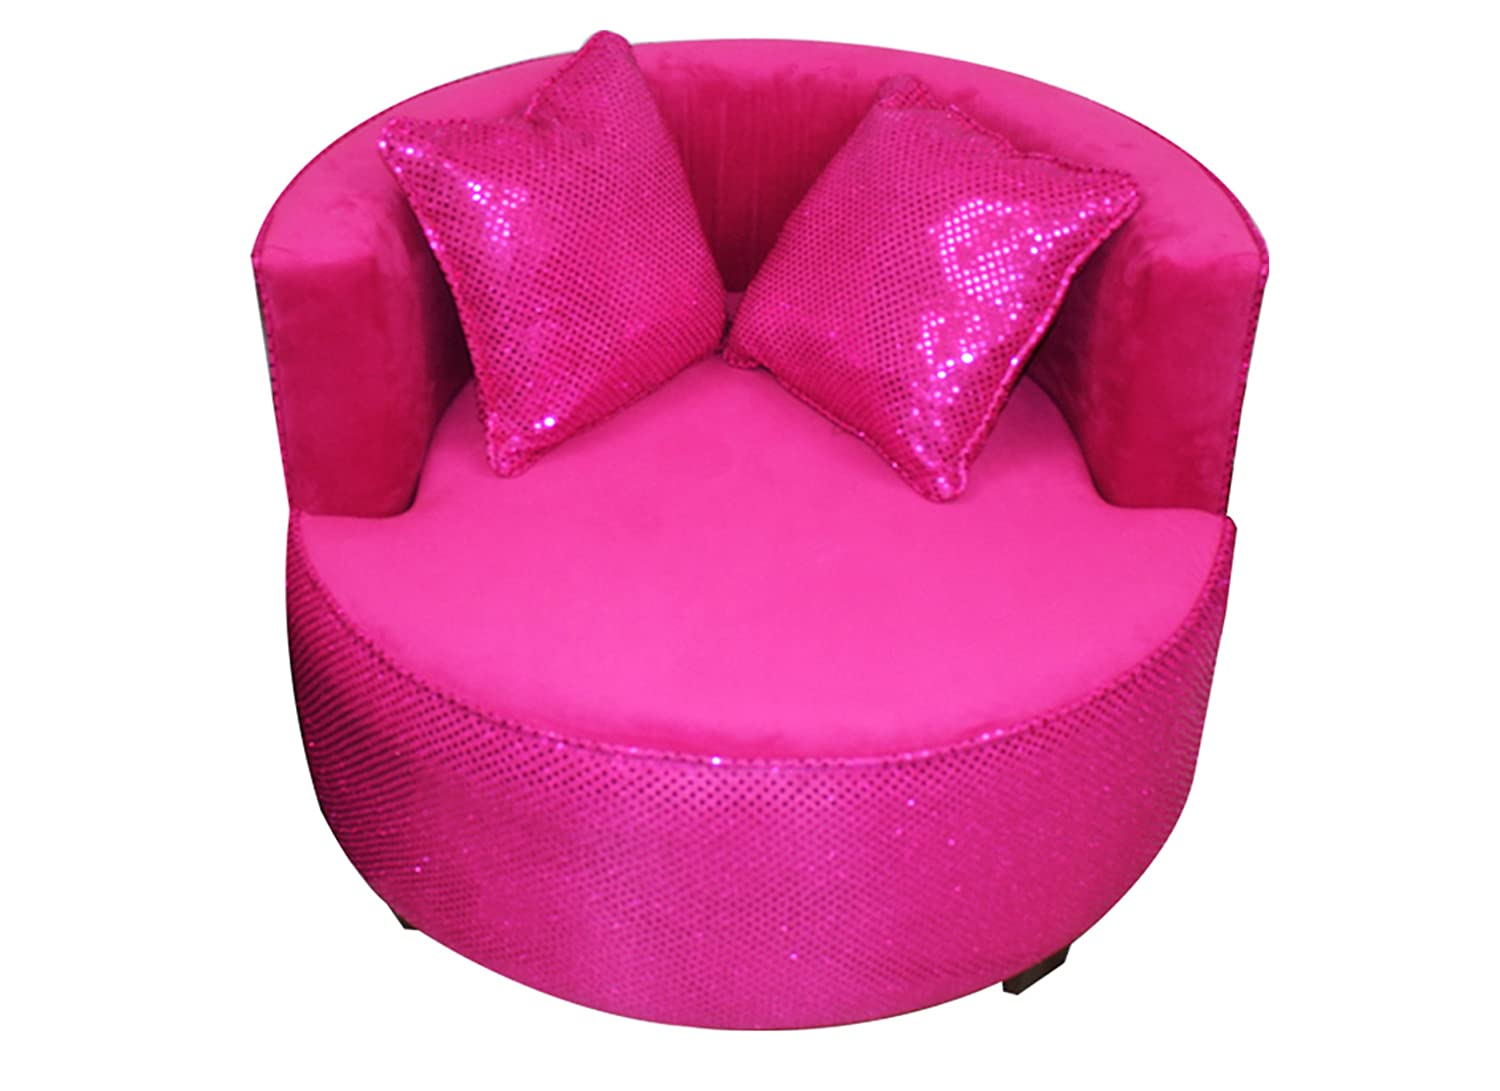 Newco Kids Redondo Tween Chair, Hot Pink Velvet with Hot Pink Sequins